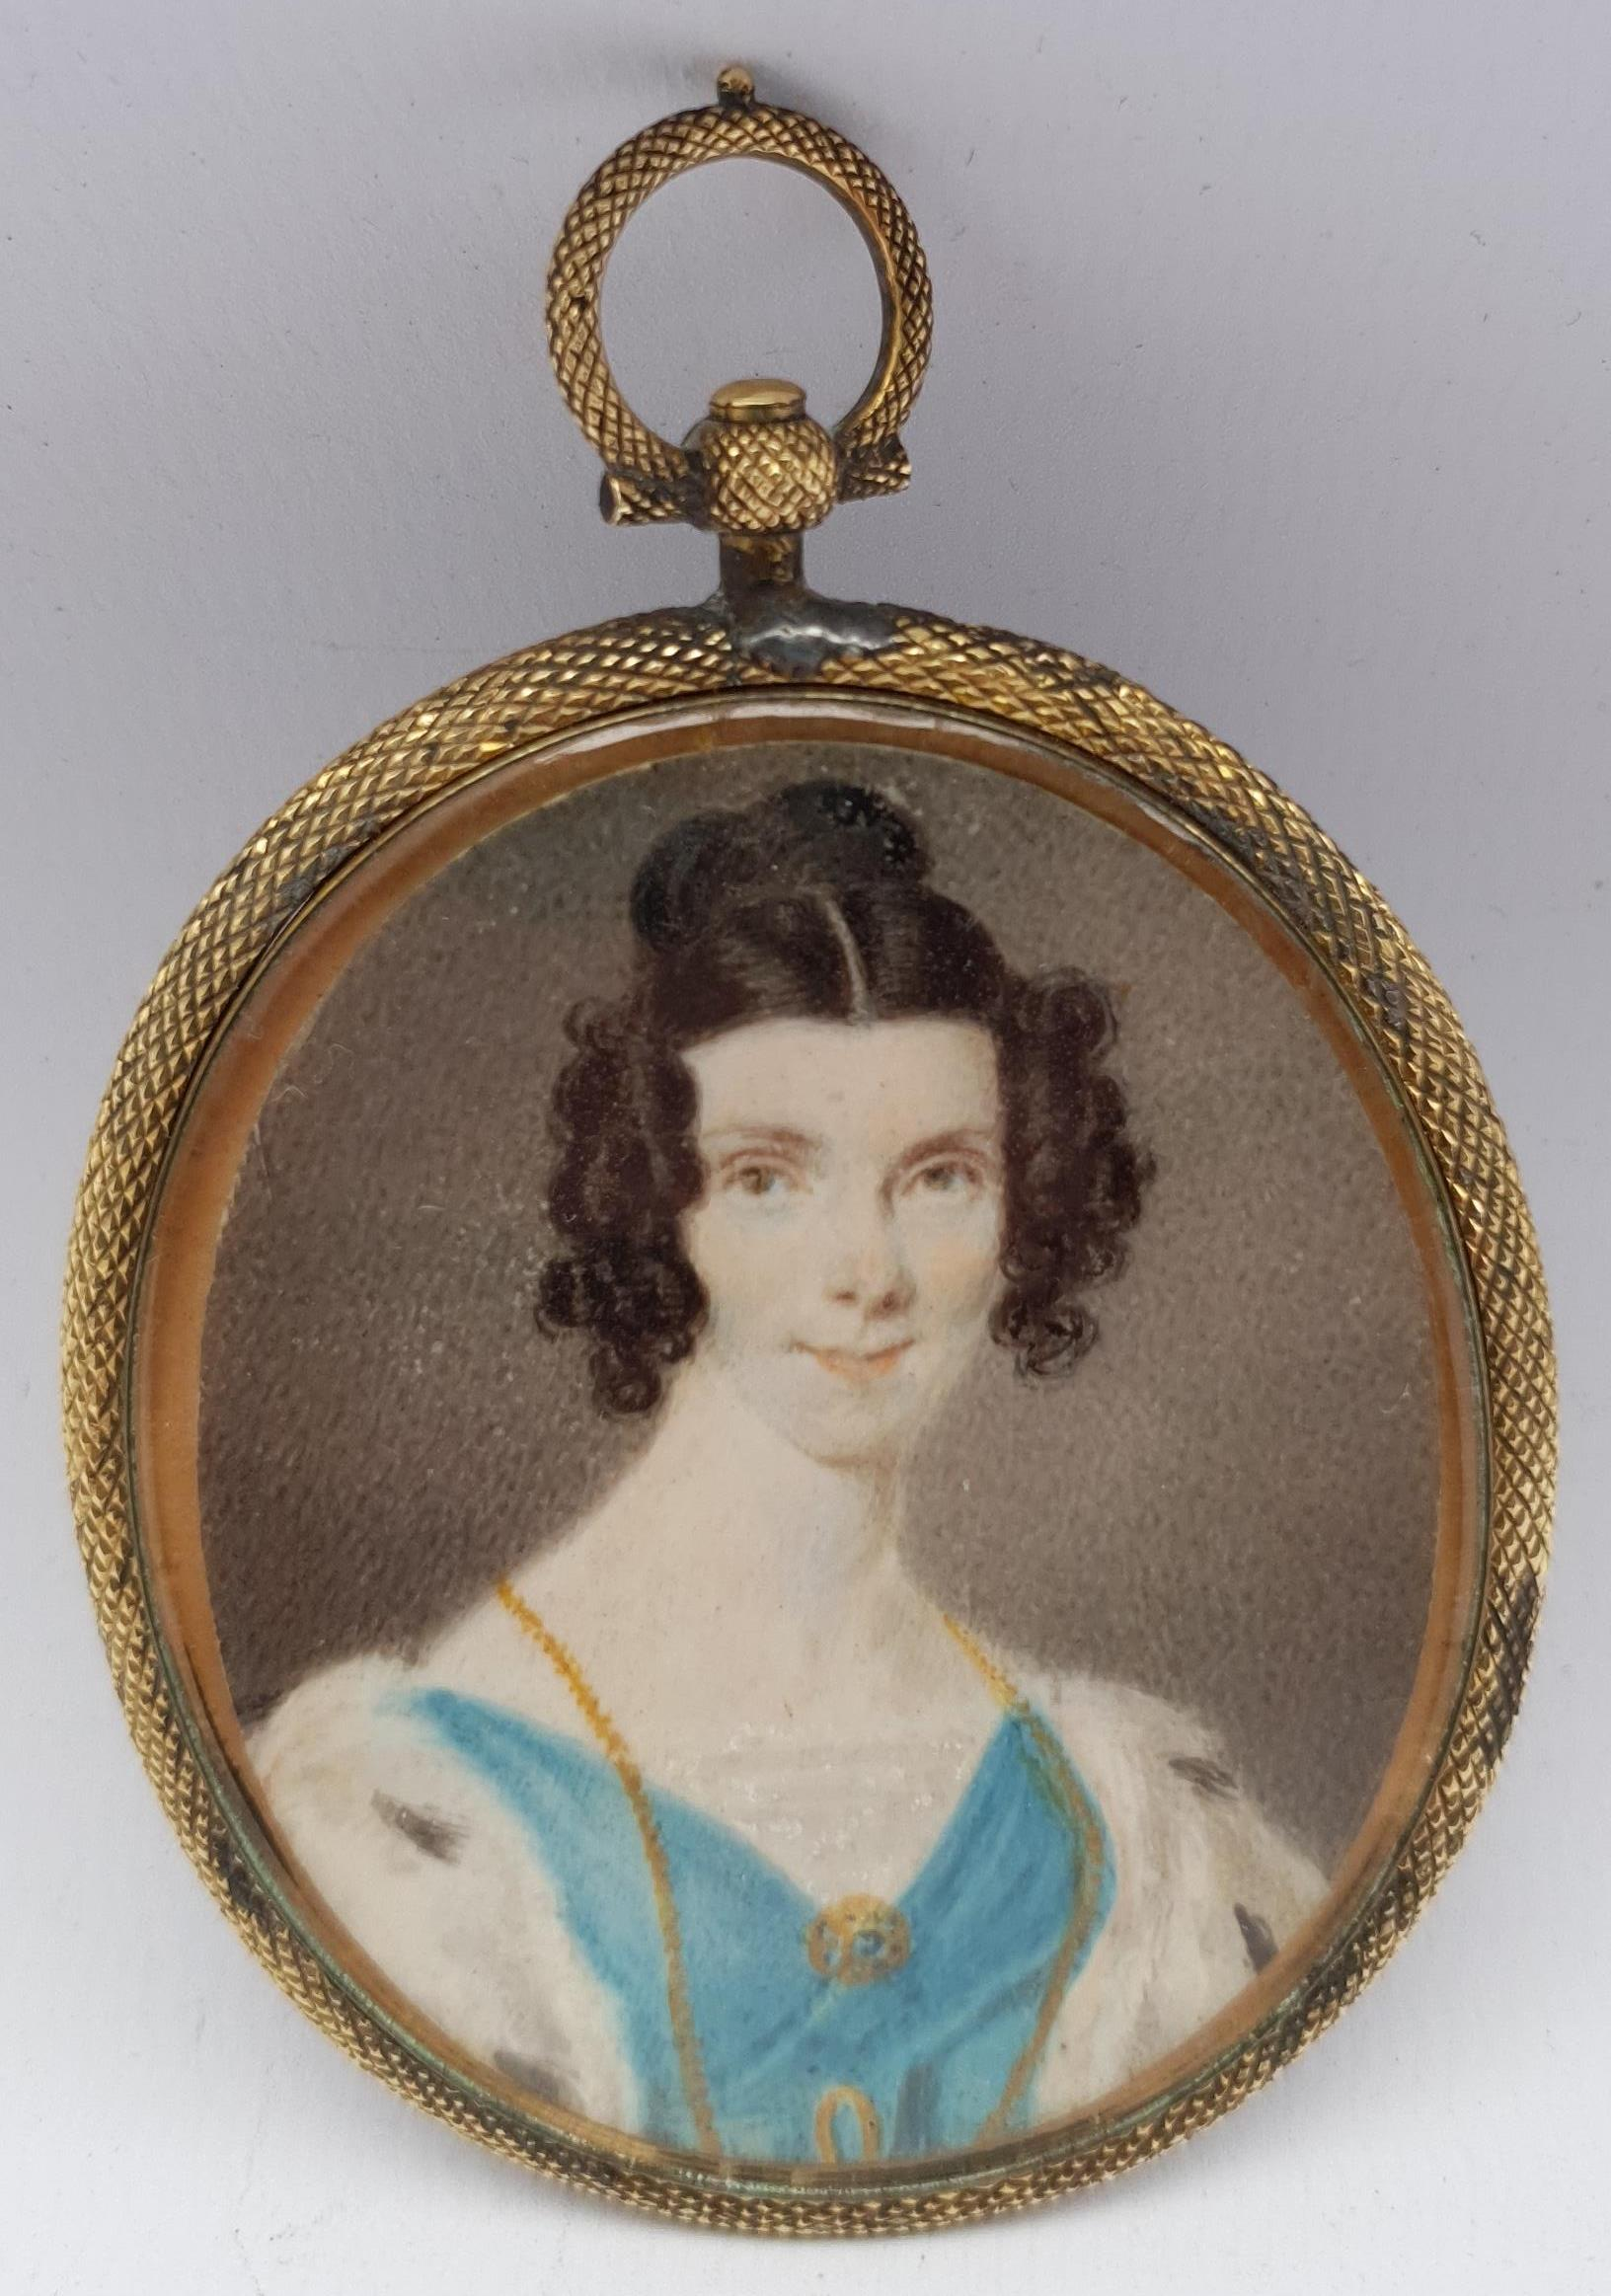 English School (19th century): Lady with an Ermine Stole, portrait miniature unsigned, locks of hair